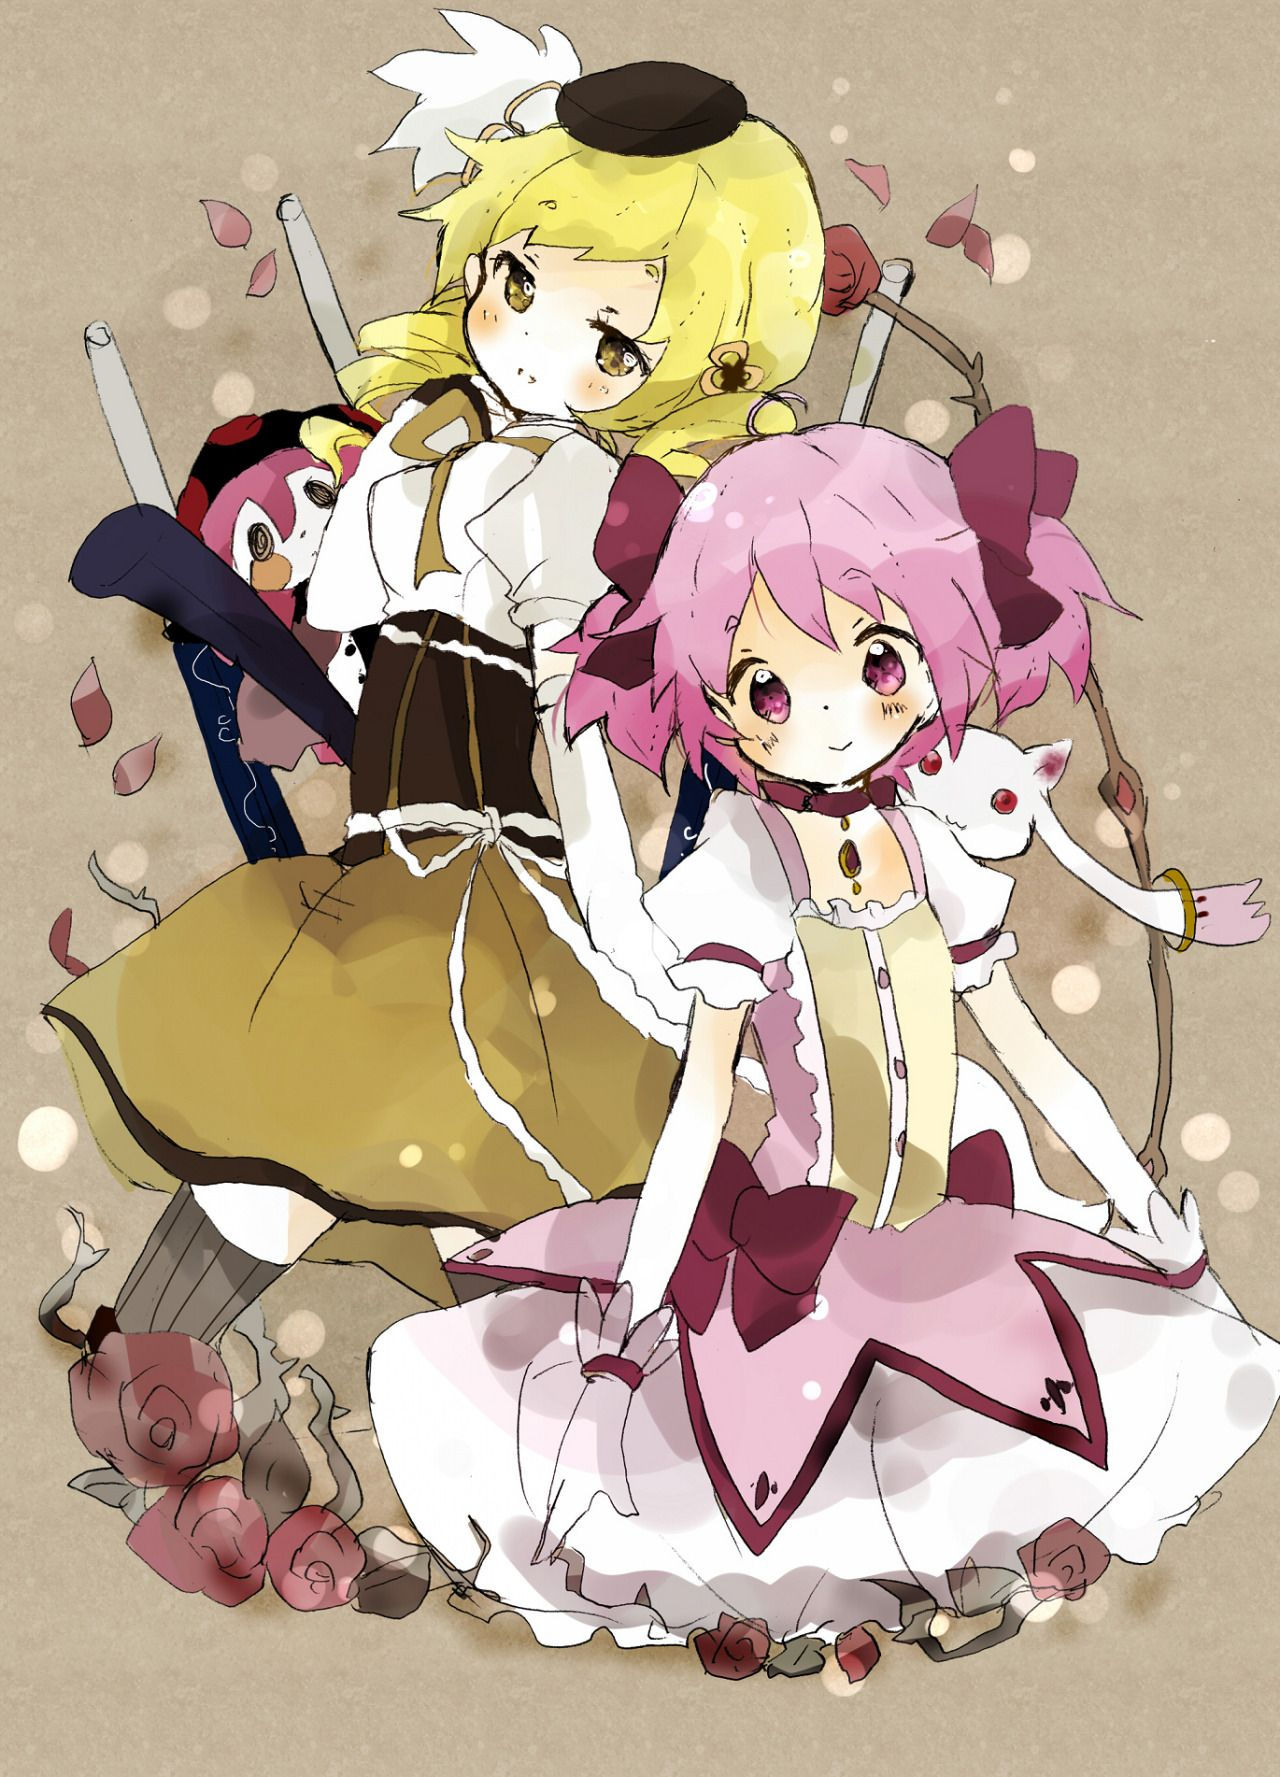 "madomamii ""By 月夜 "" (With images) Anime, Fan art, Madoka"